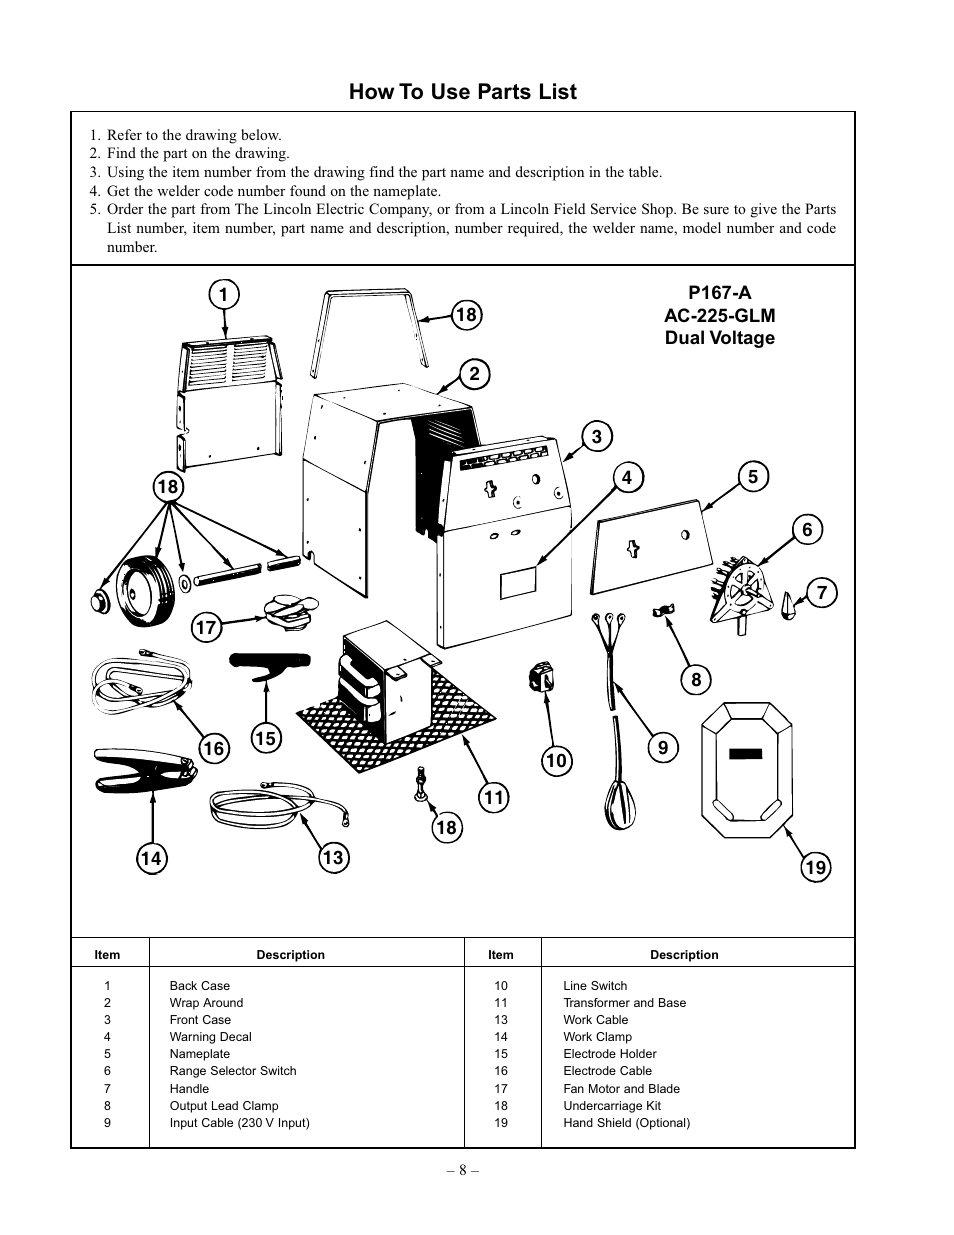 Use The Parts List To Identify The Components